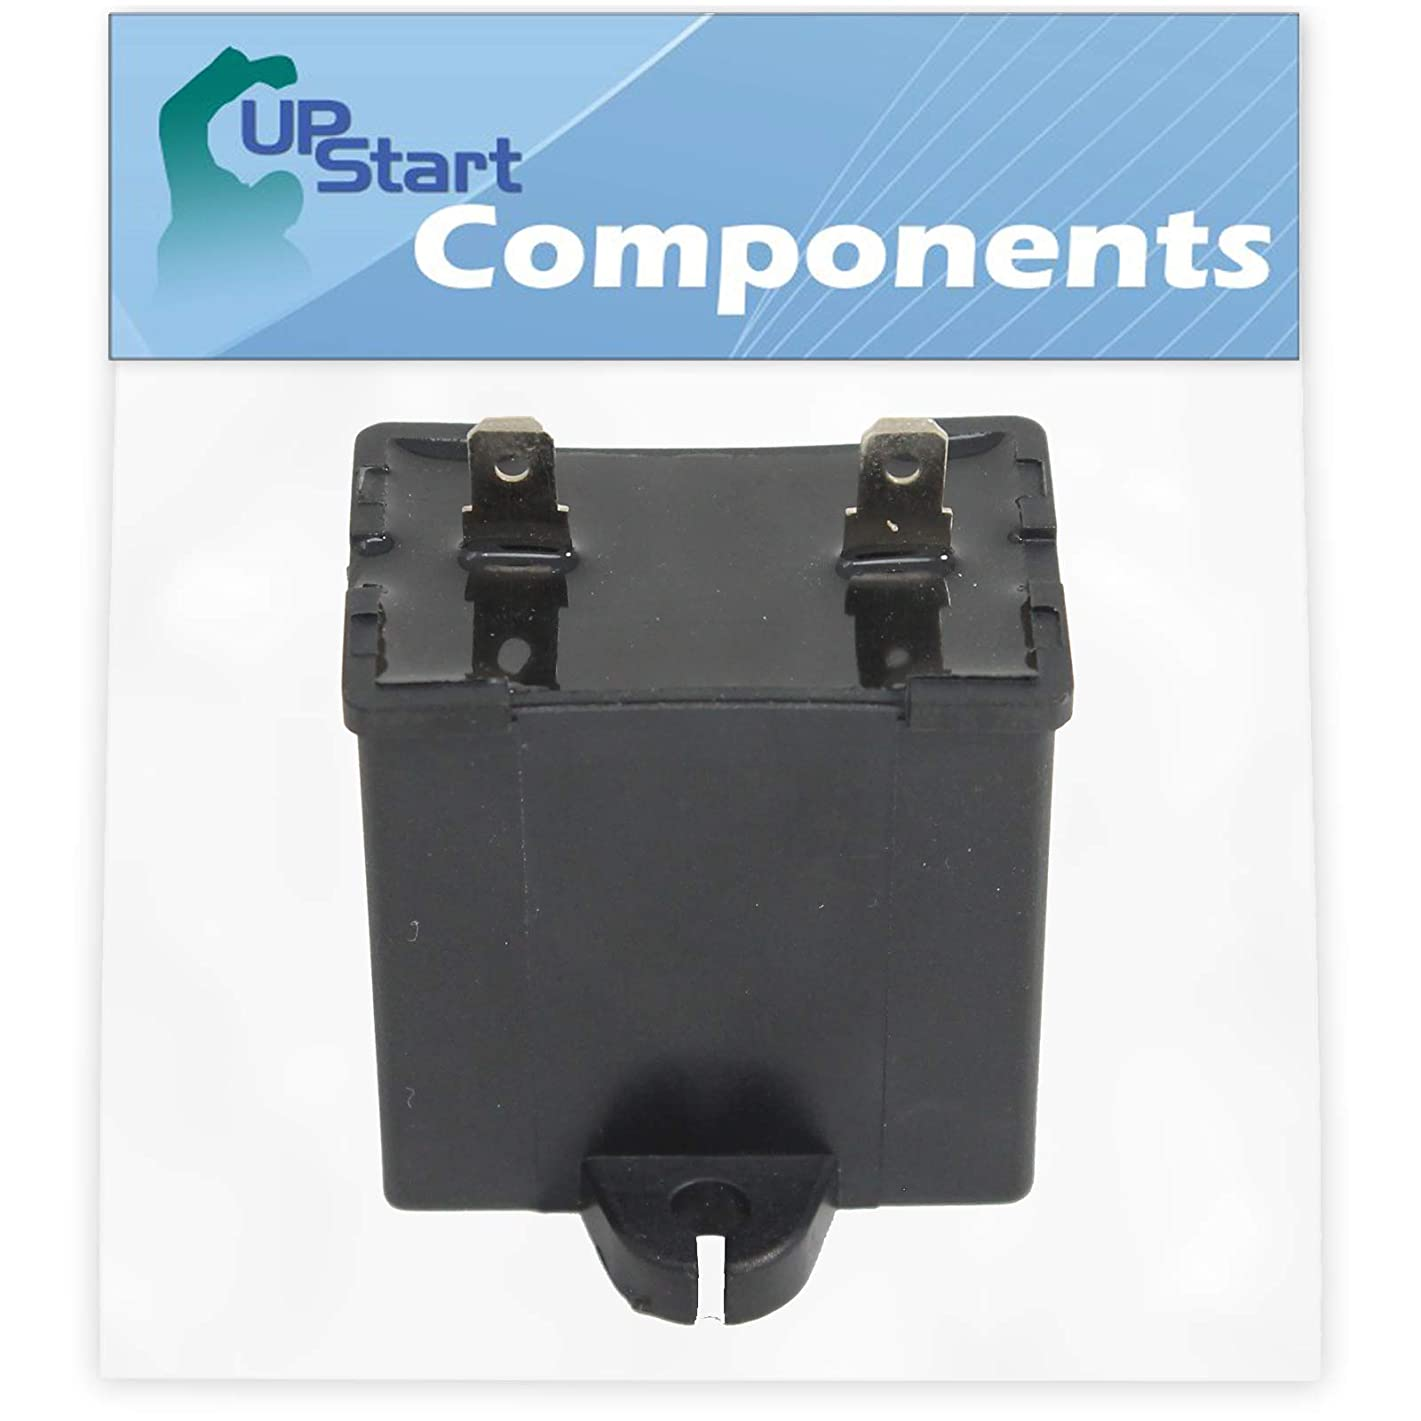 W10662129 Refrigerator and Freezer Compressor Run Capacitor Replacement for KitchenAid KBRS22EVBL00 Refrigerator - Compatible with 2169373 WPW10662129 Run Capacitor - UpStart Components Brand